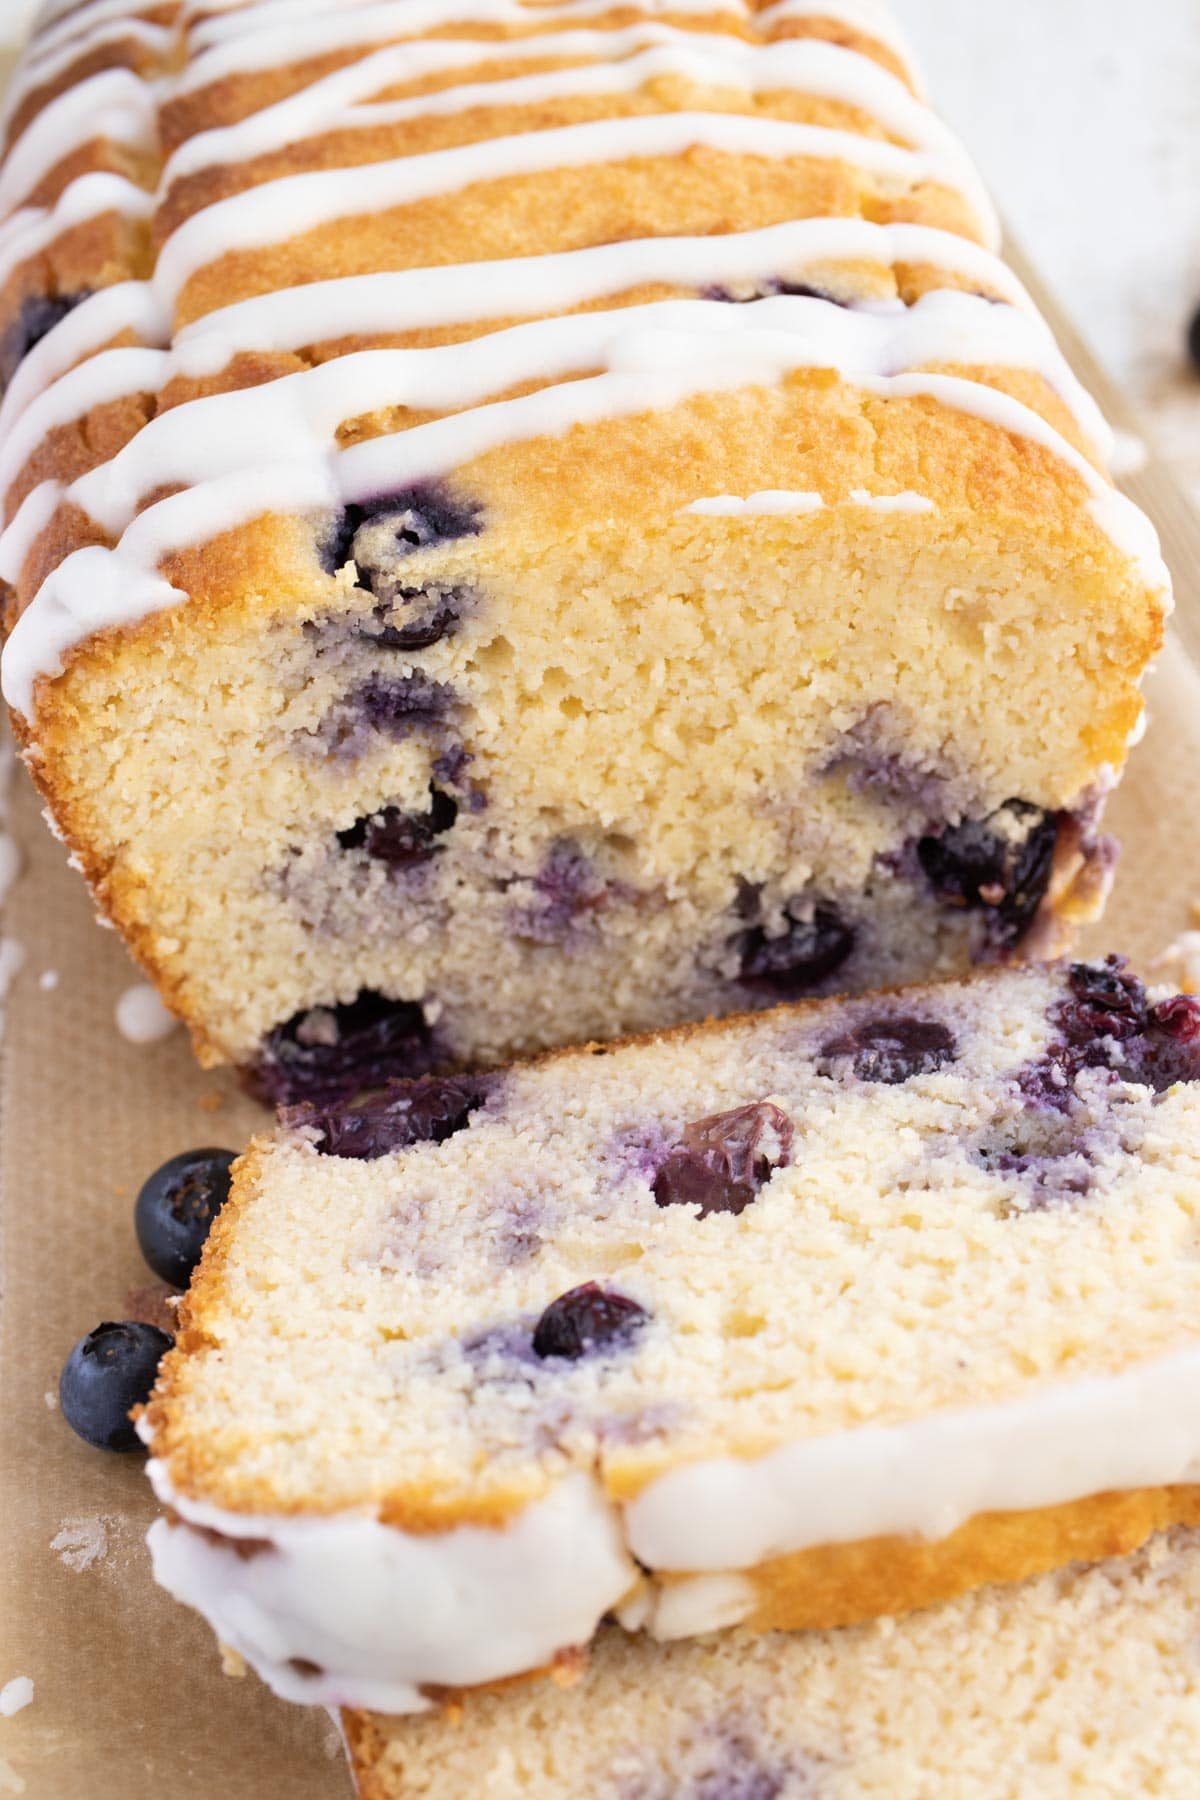 keto blueberry bread topped with lemon icing sliced open